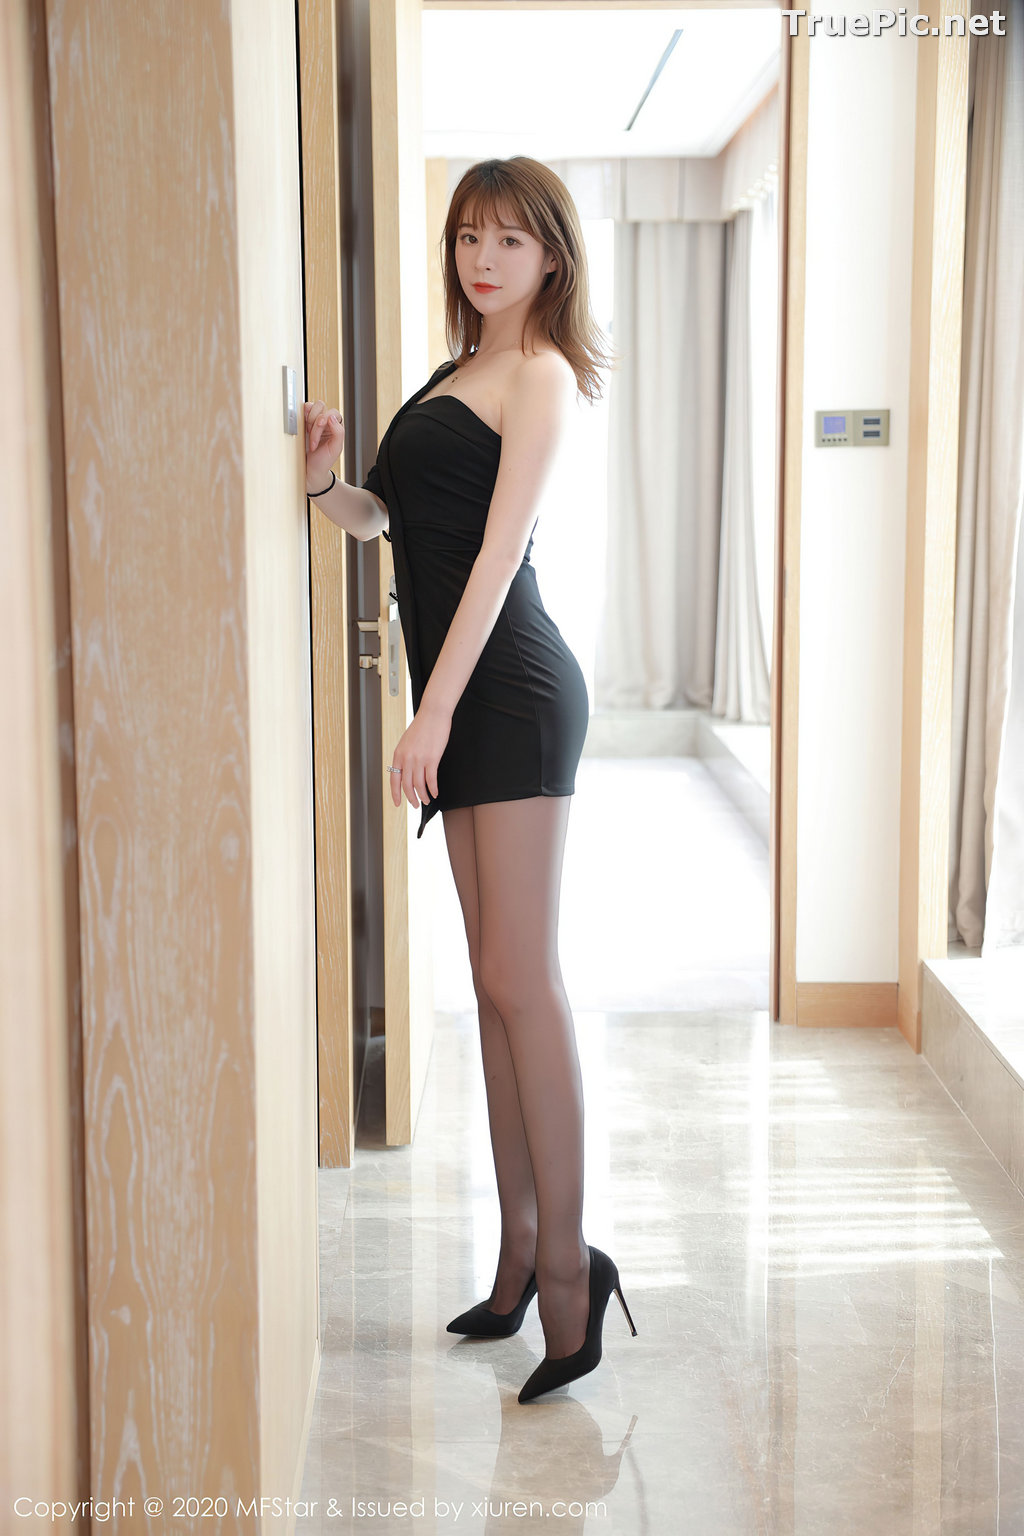 Image MFStar Vol.405 - Chinese Model - Yoo优优 - Hot Woman in Black - TruePic.net - Picture-1